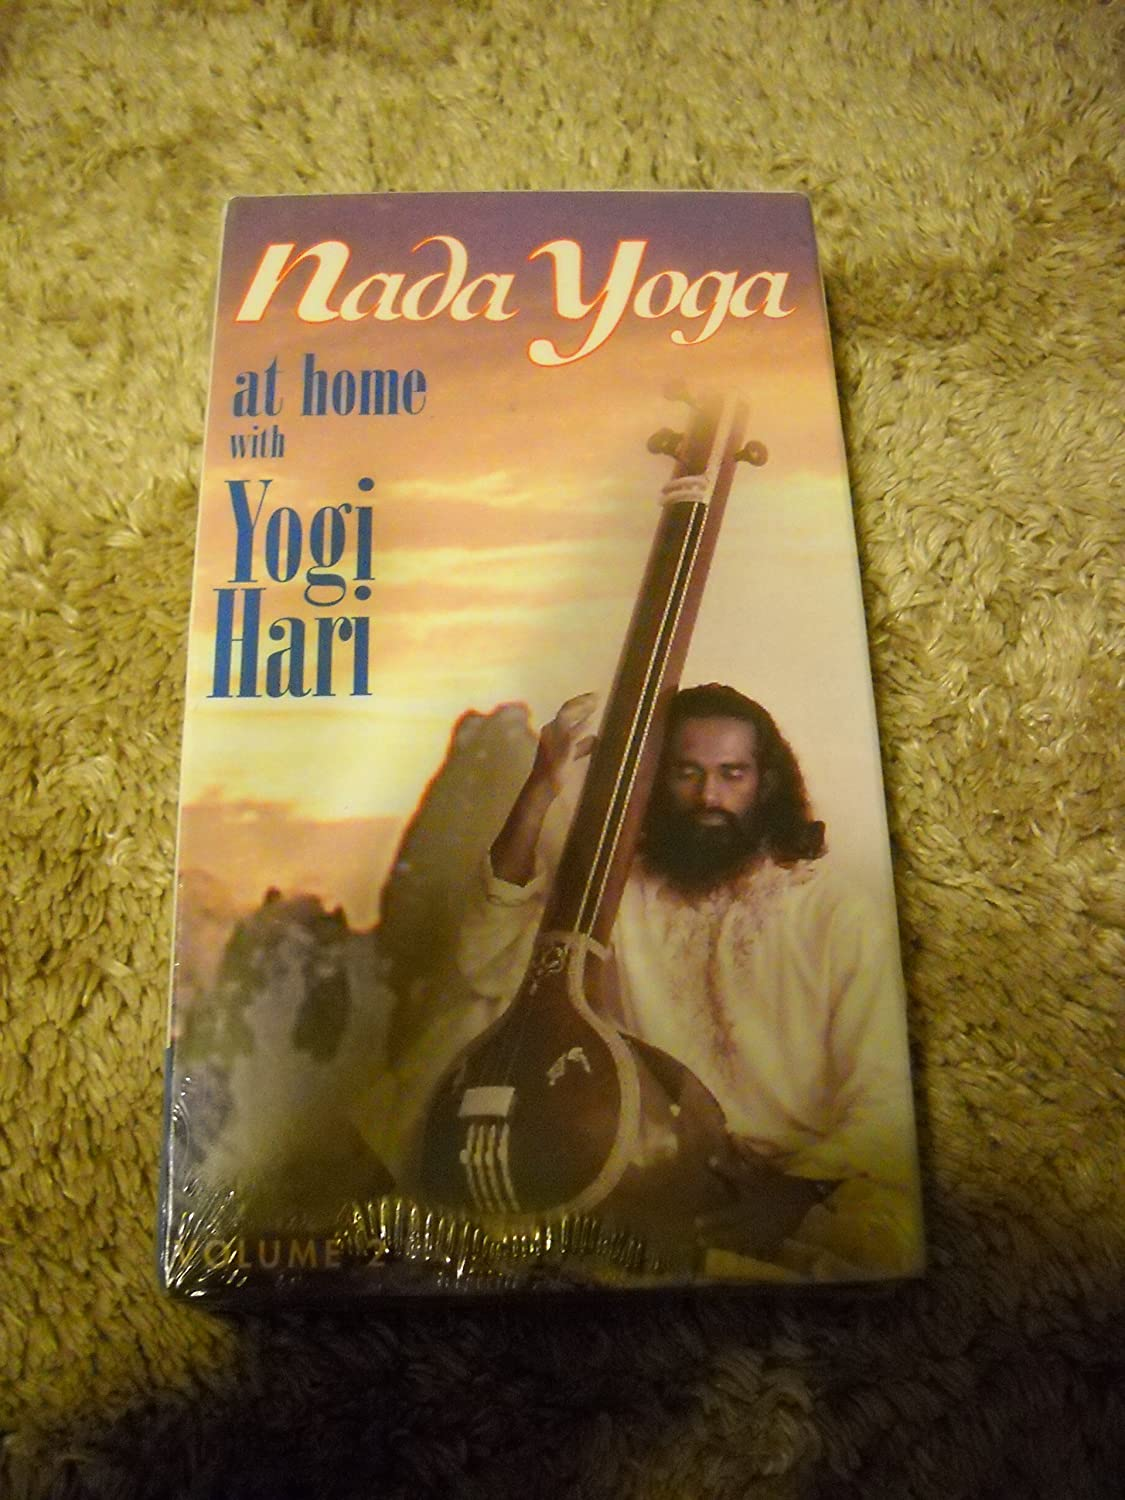 Amazon.com: Nada Yoga At Home, Volume 2: Yogi Hari: Movies & TV